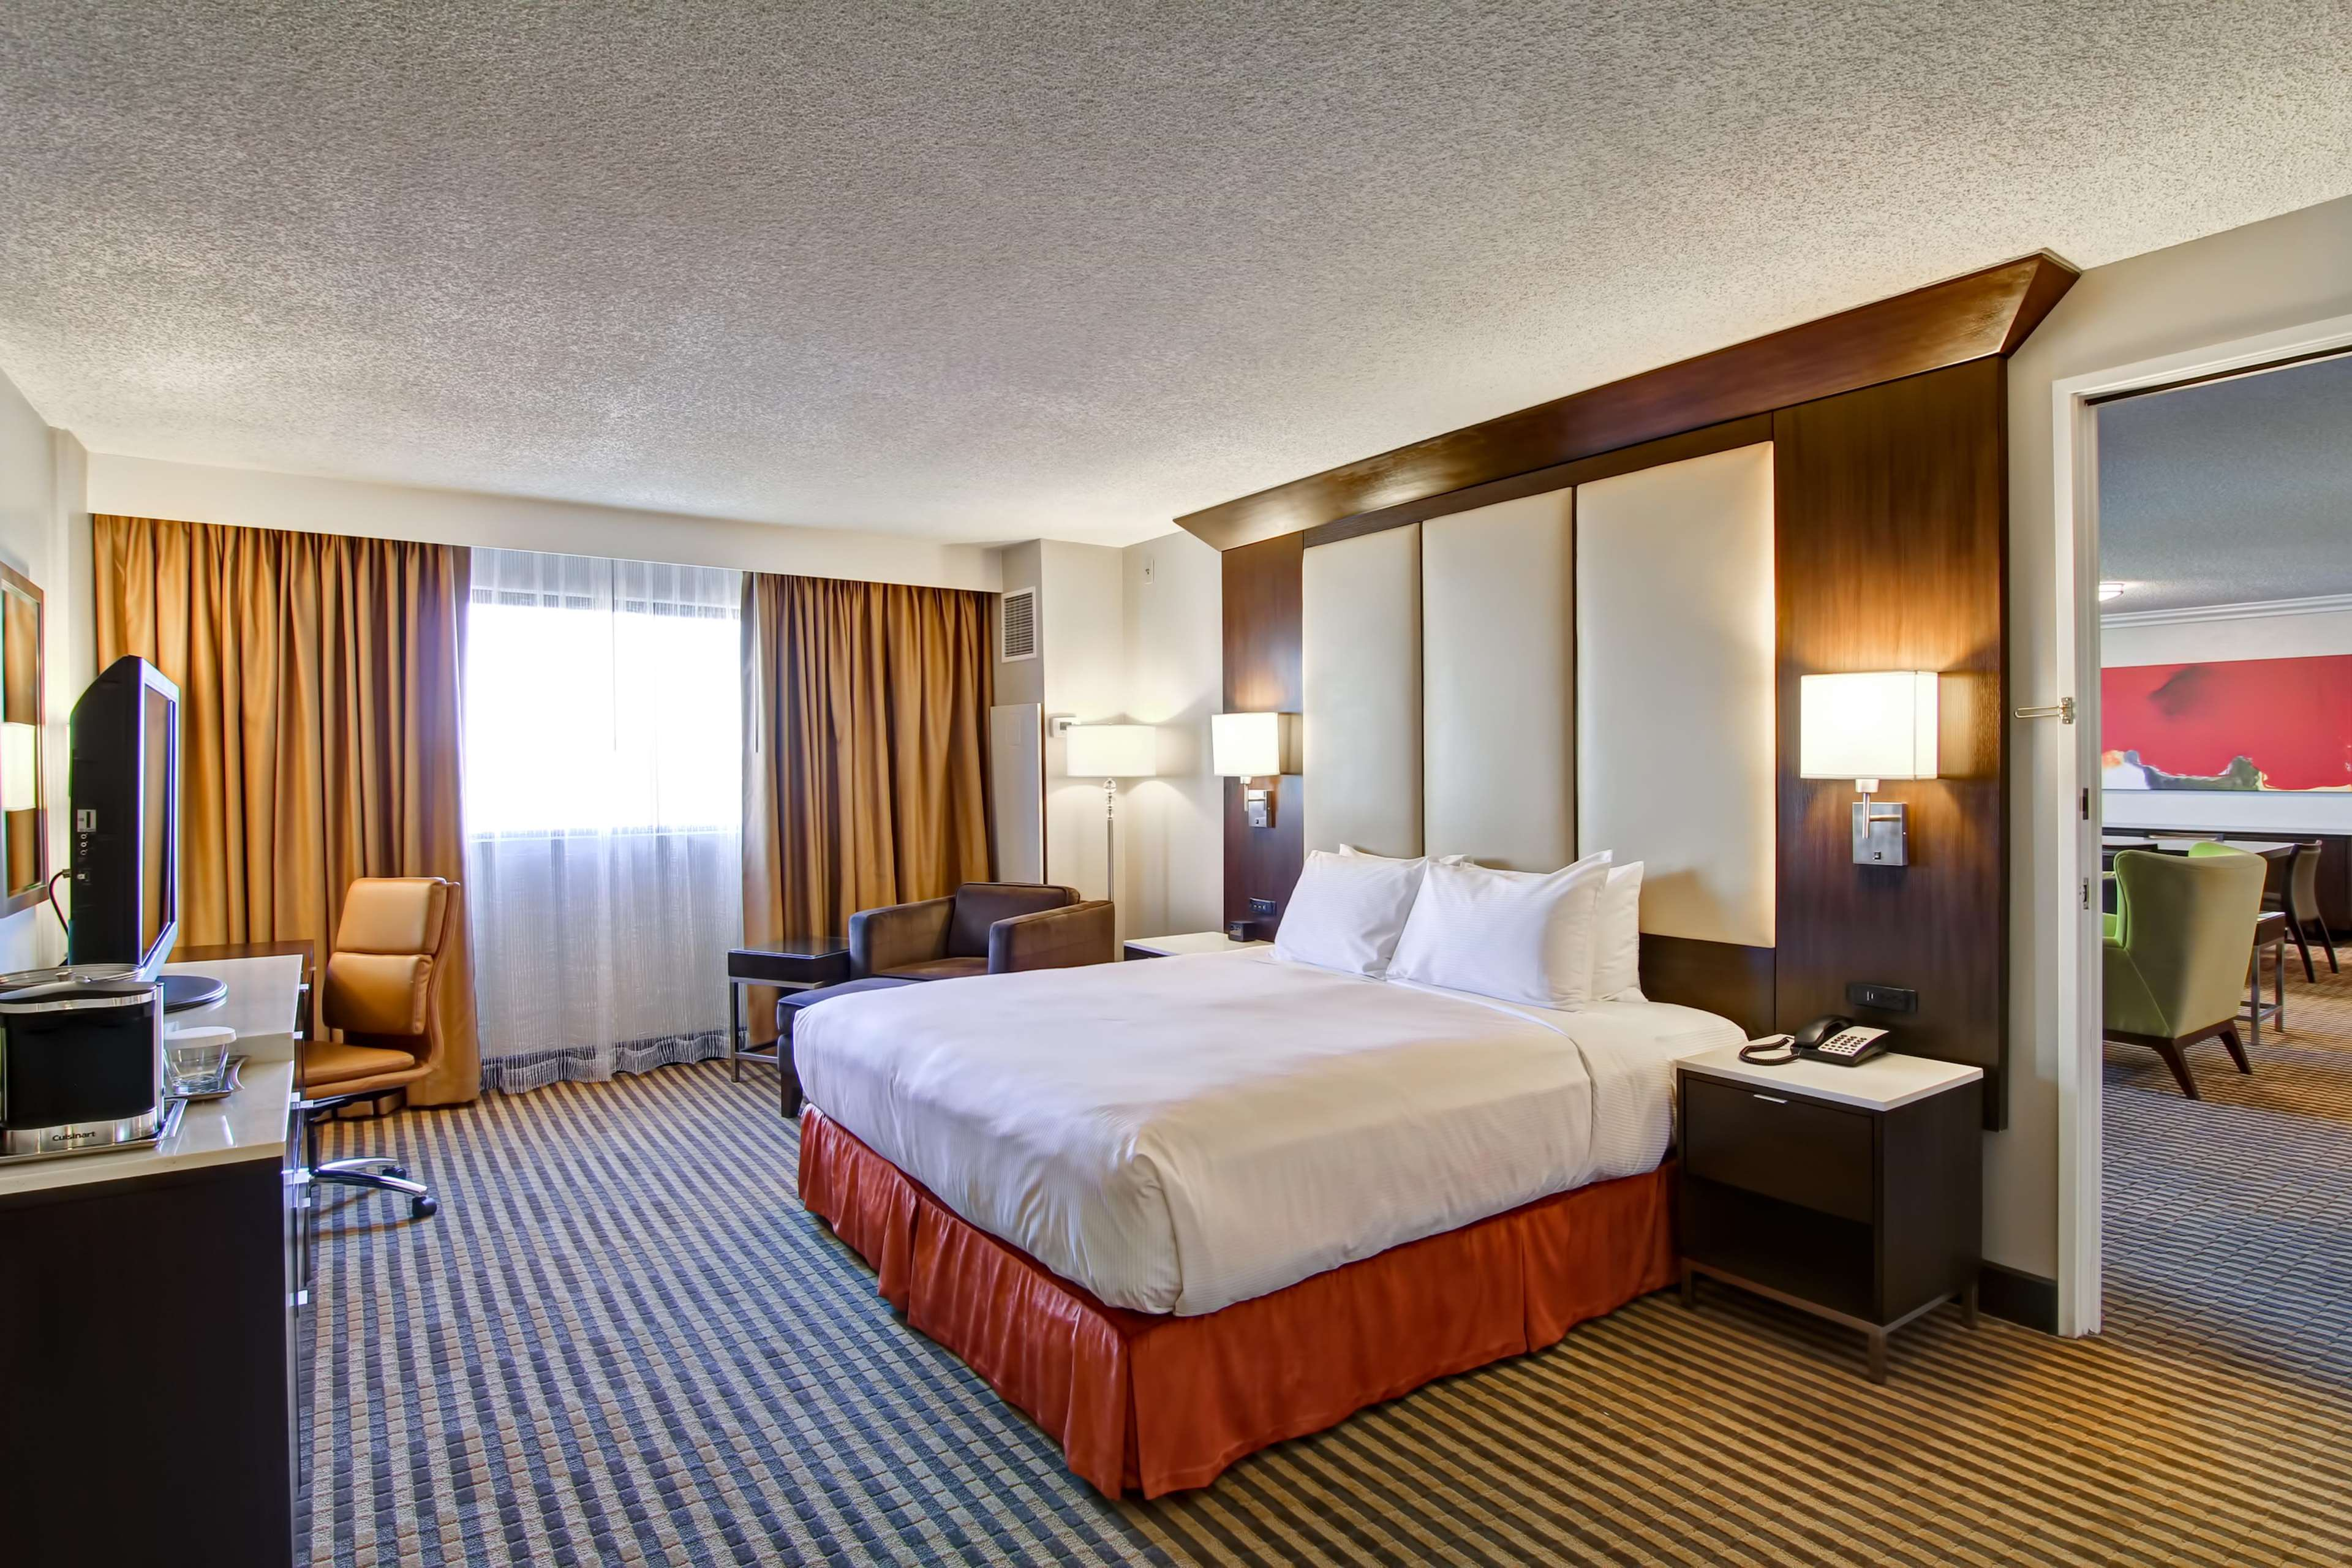 DoubleTree by Hilton Hotel Pleasanton at the Club image 32